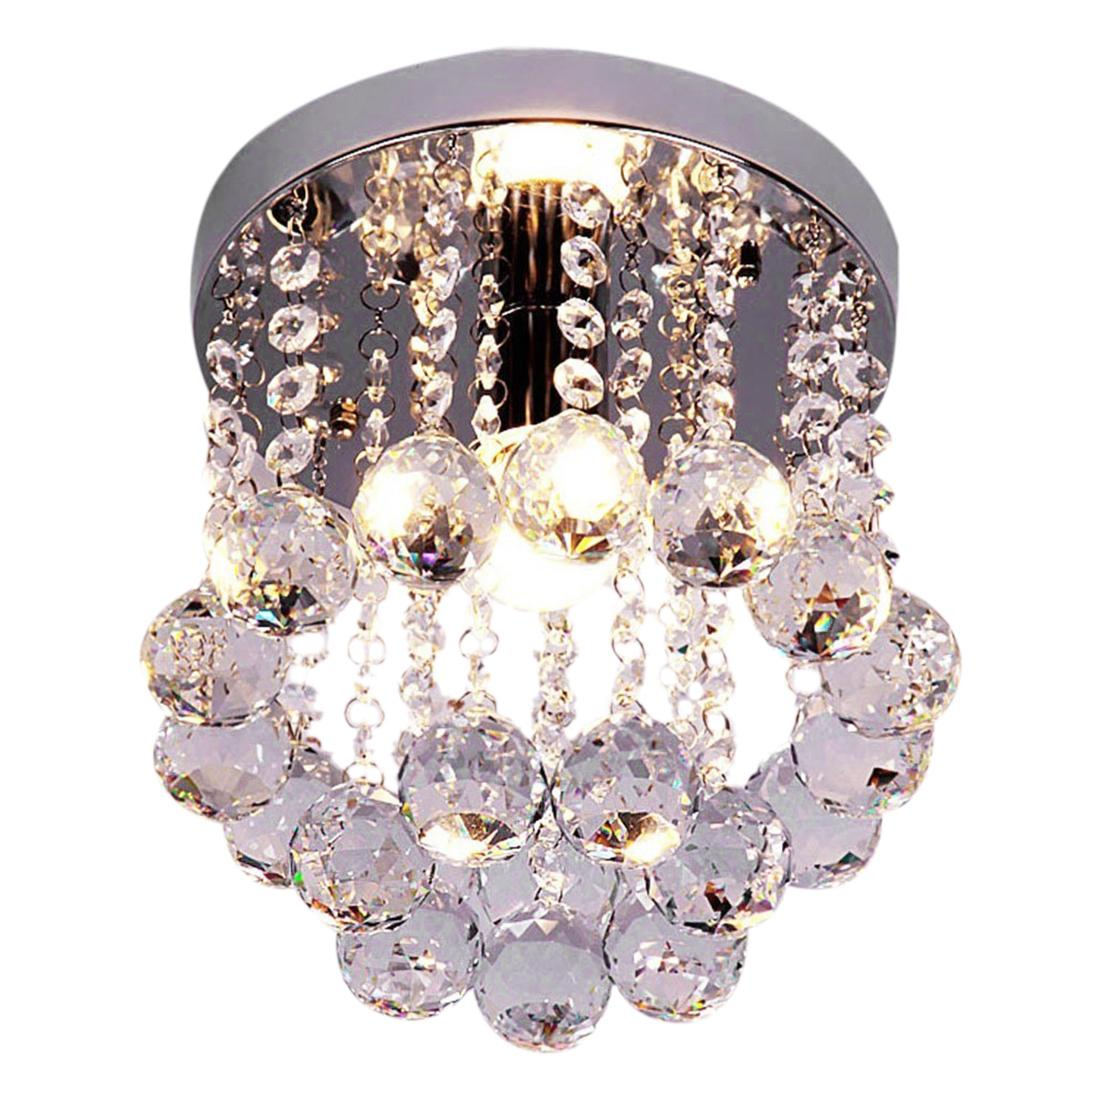 Retro Luxury Flush Mount Crystal Pendant Ceiling Light Chandelier Lighting HQ